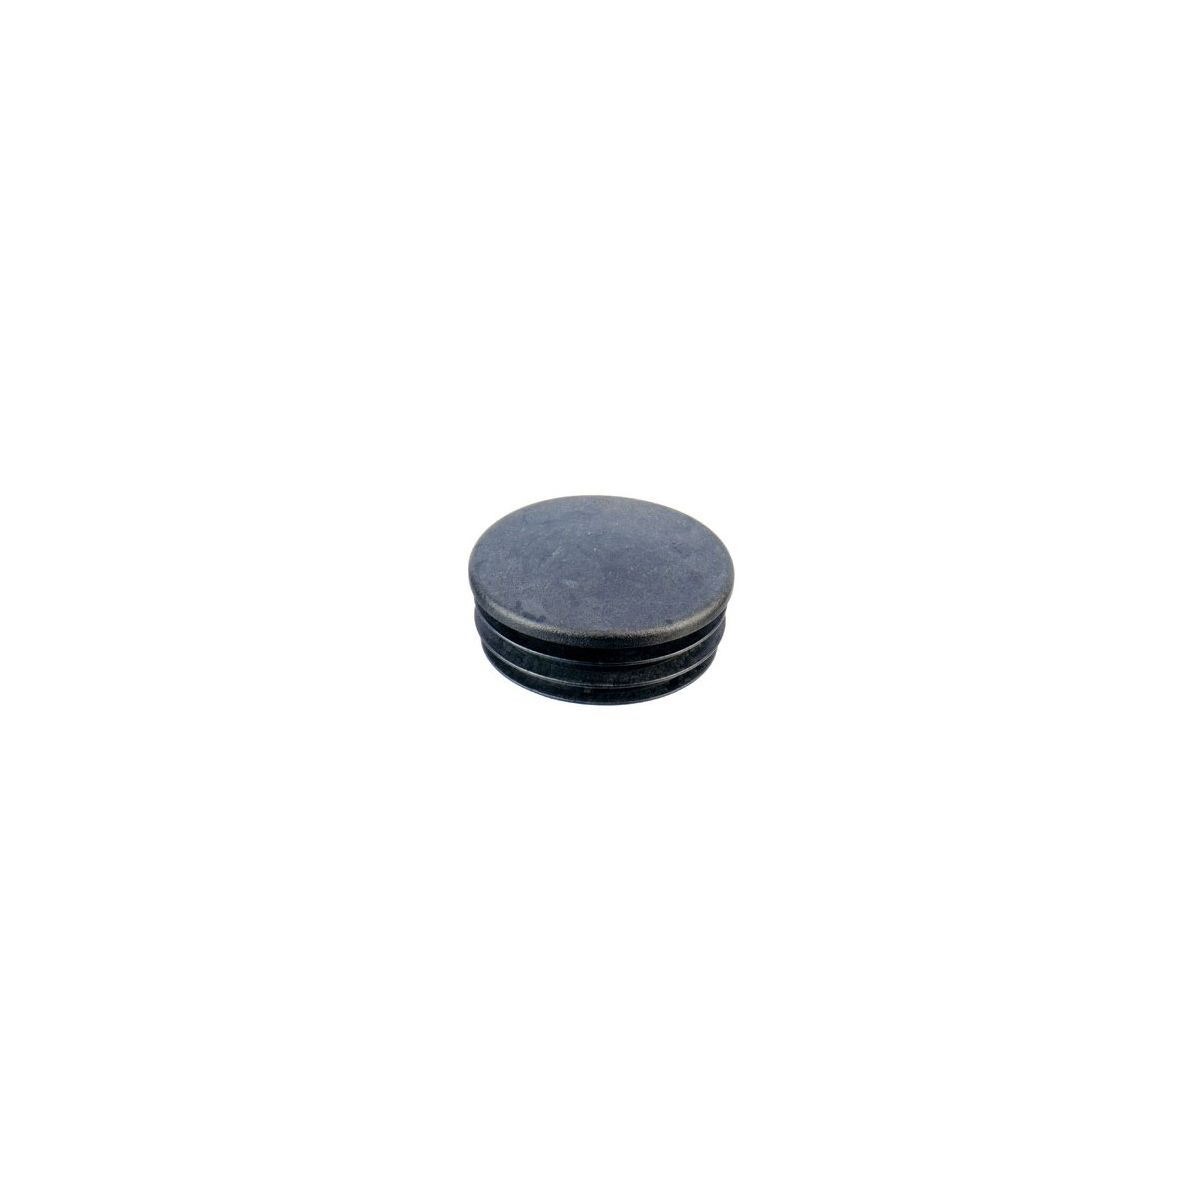 Xreme base feet cap for S 3000 workstands